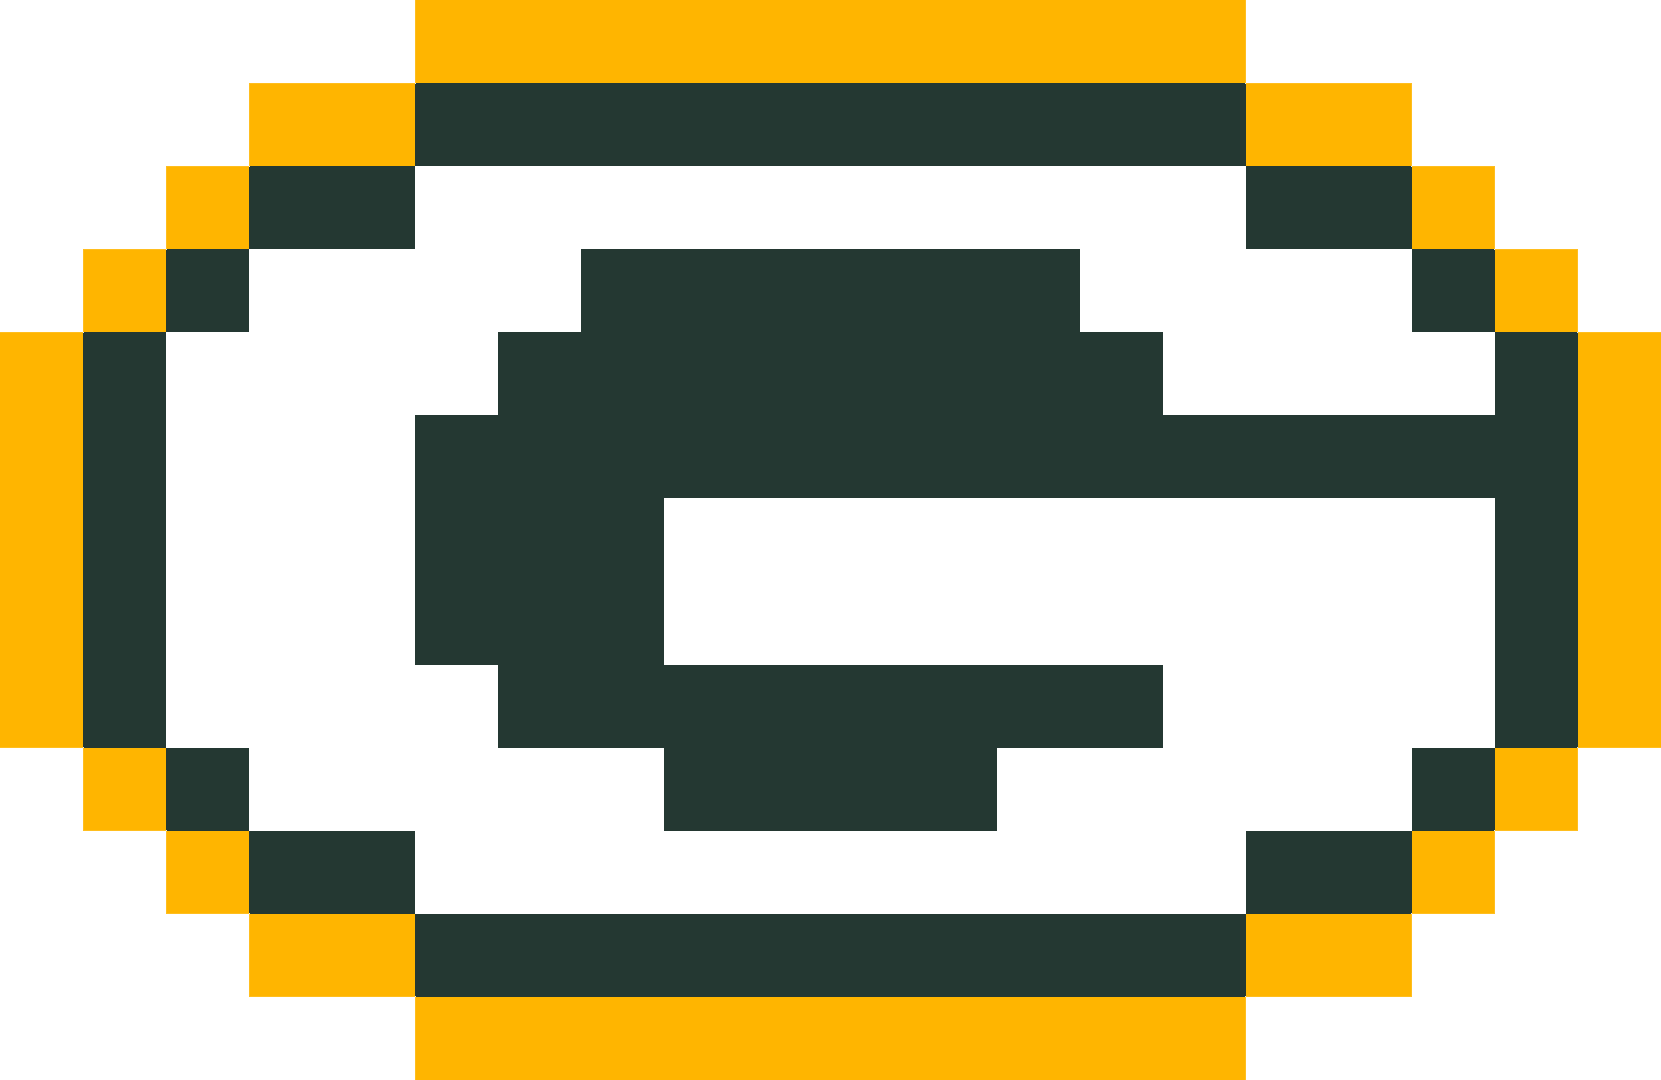 Green bay packers logo png. Image minecraft logopng